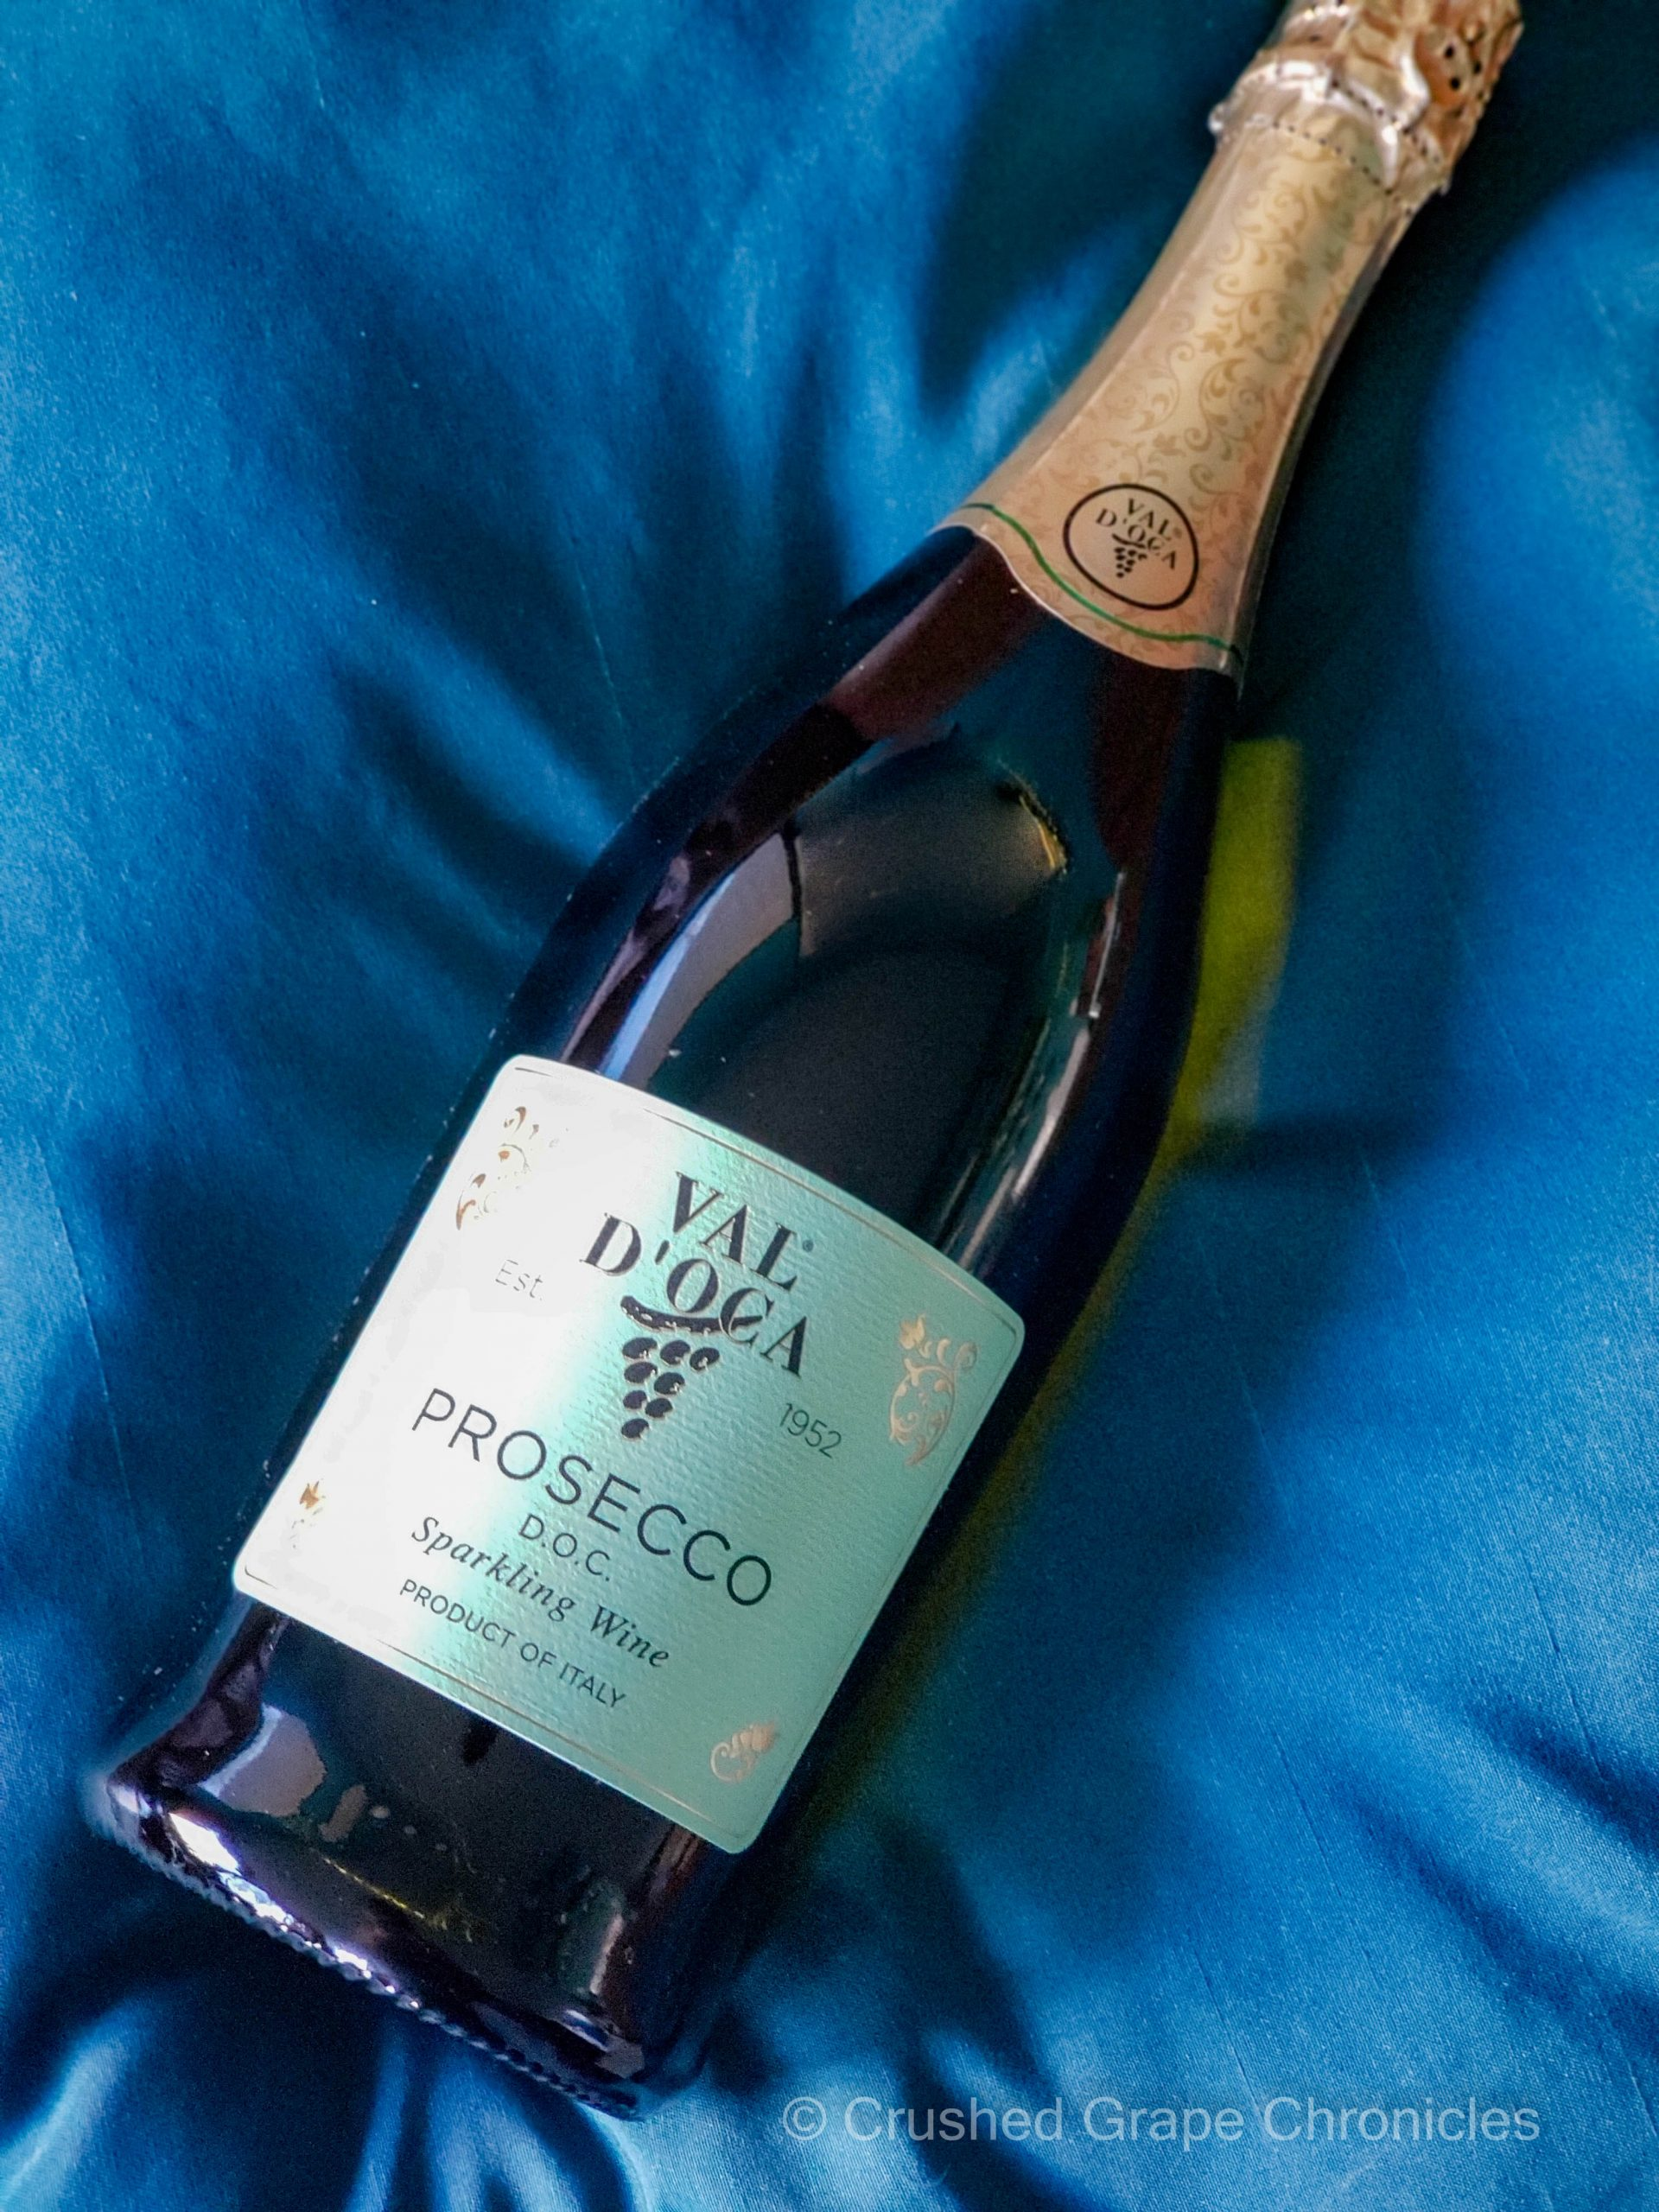 Val d'Oca Prosecco bottle shot on pillow